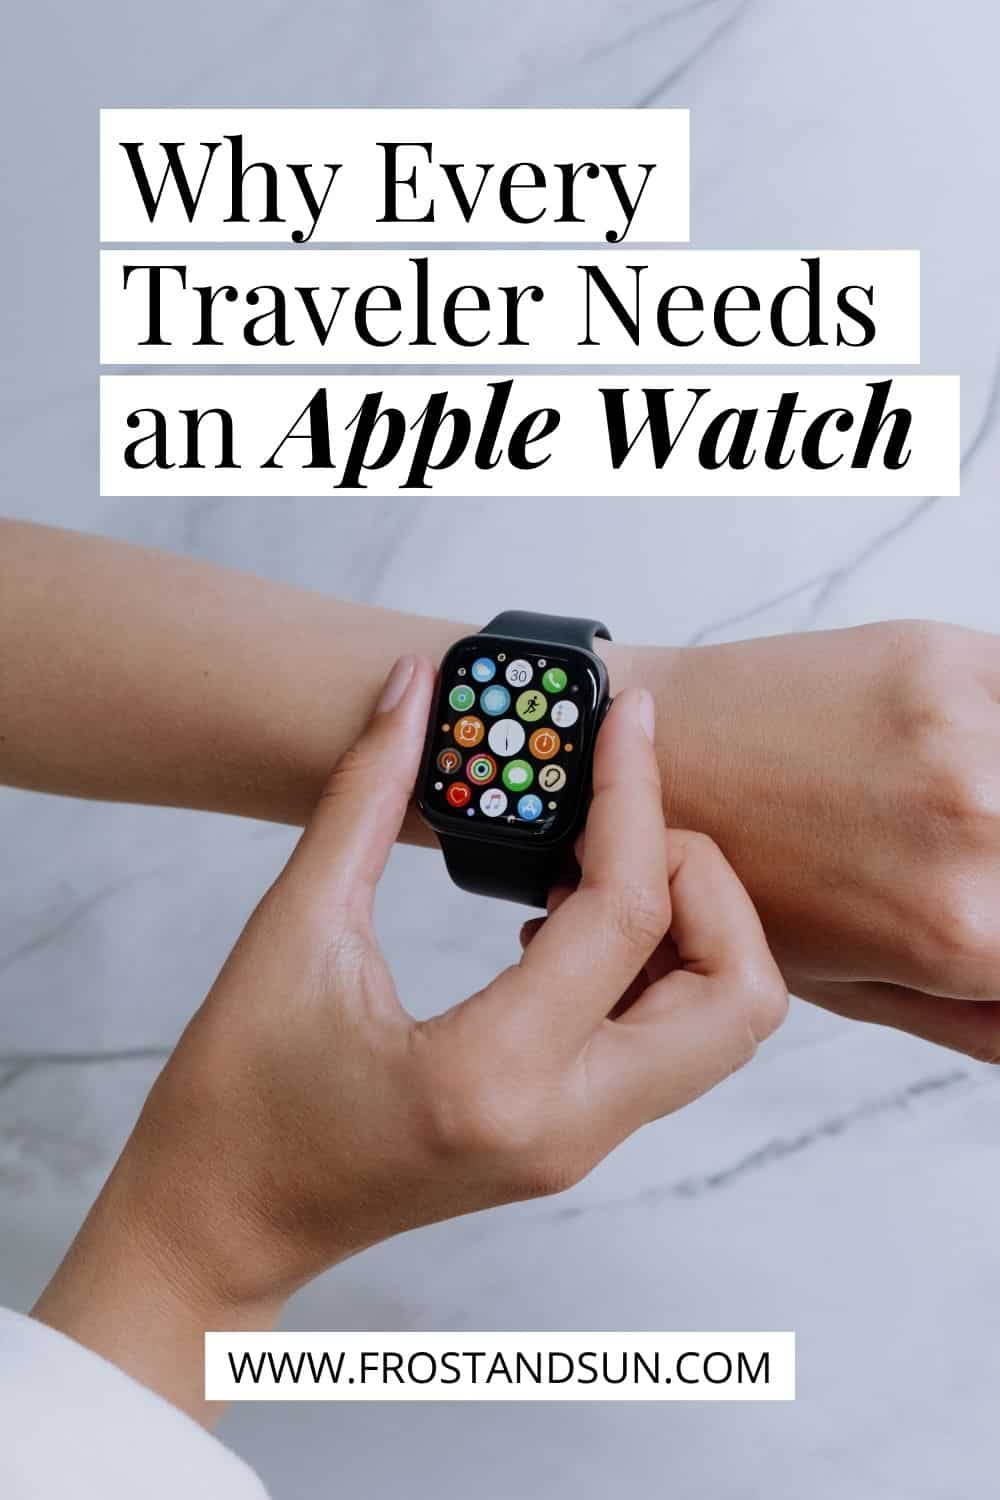 Is the Apple Watch worth it? YES, especially if you travel.